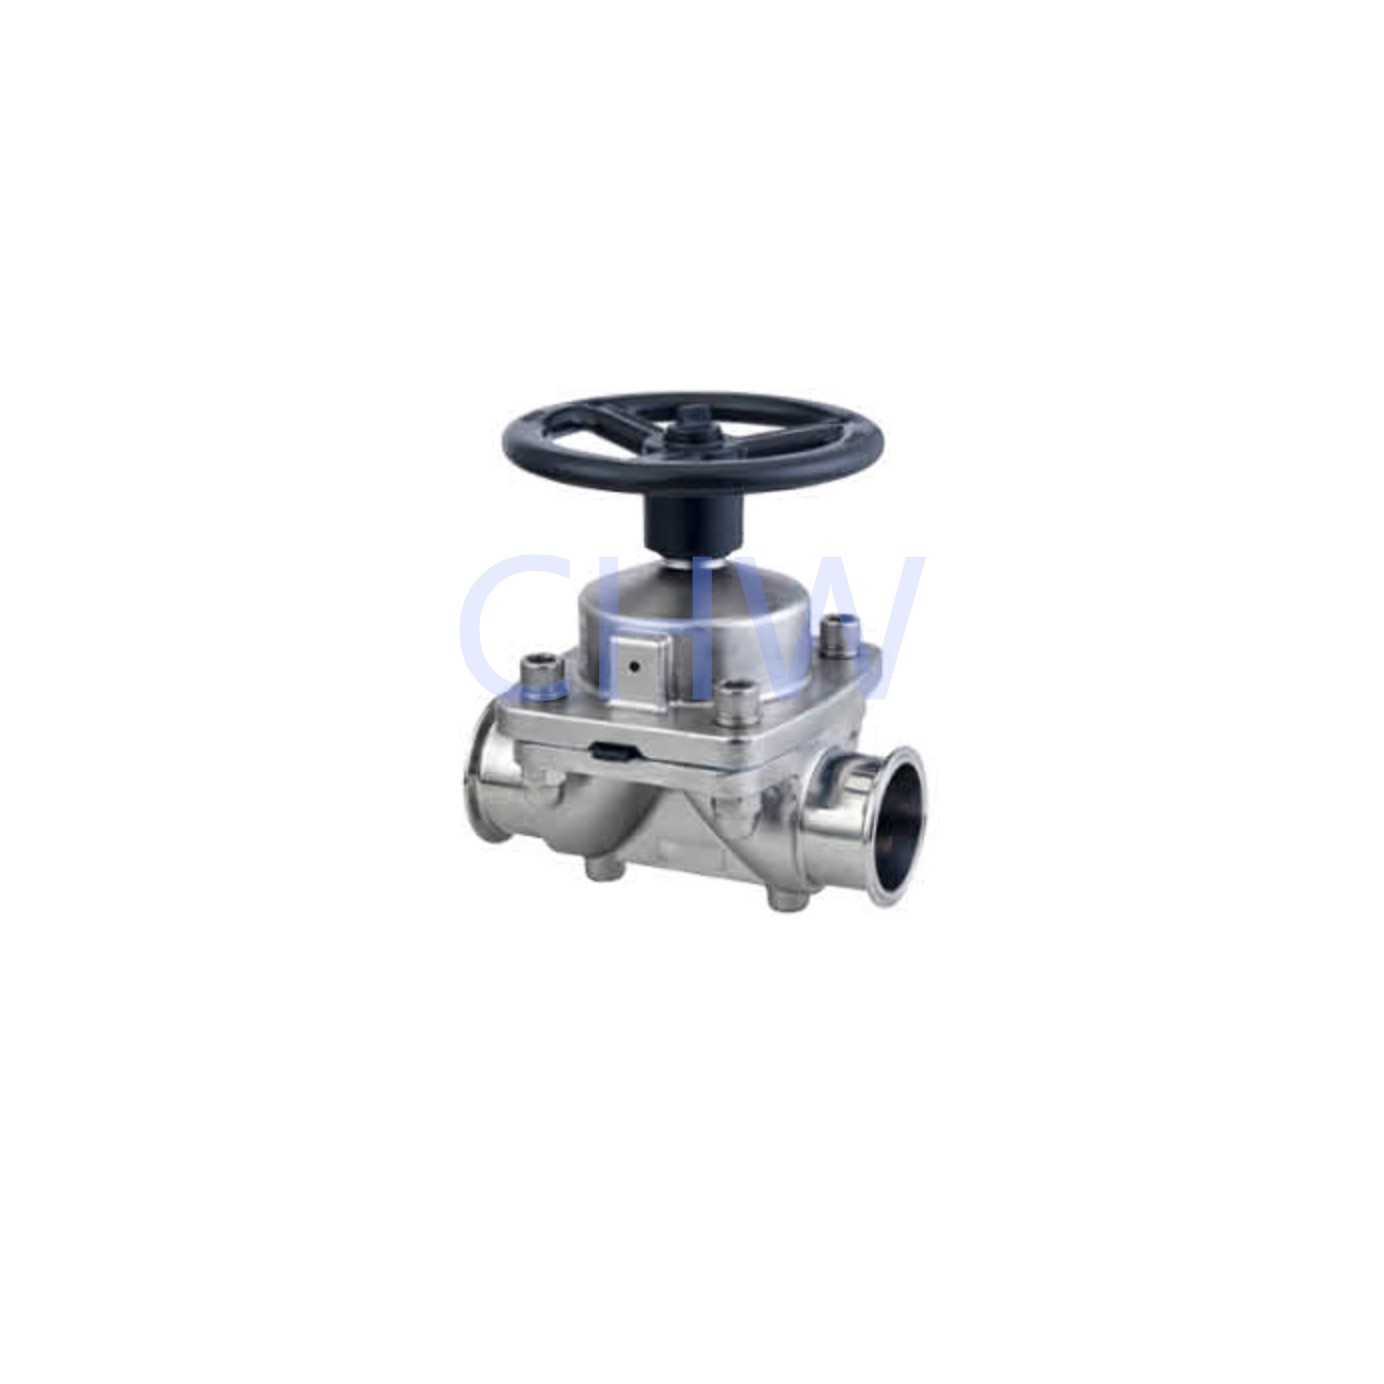 Sanitary stainless steel high quality Manualy Operated Diaphragm Vlave 304 ss316L DIN SMS ISO 3A BPE IDF AS BS